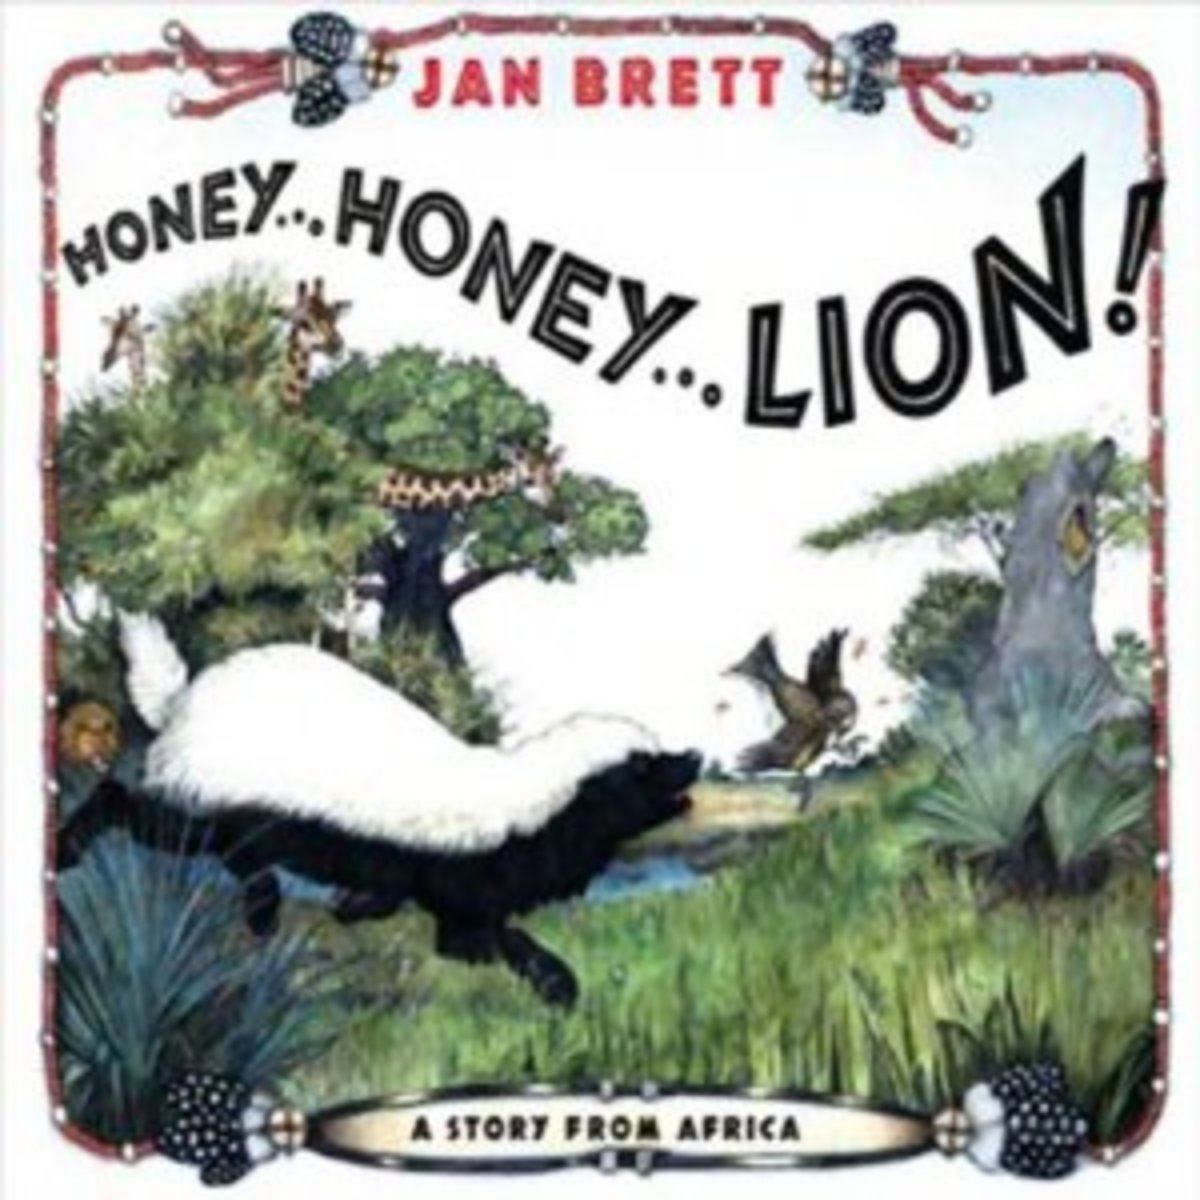 Honey... Honey... Lion! A Story from Africa by Jan Brett